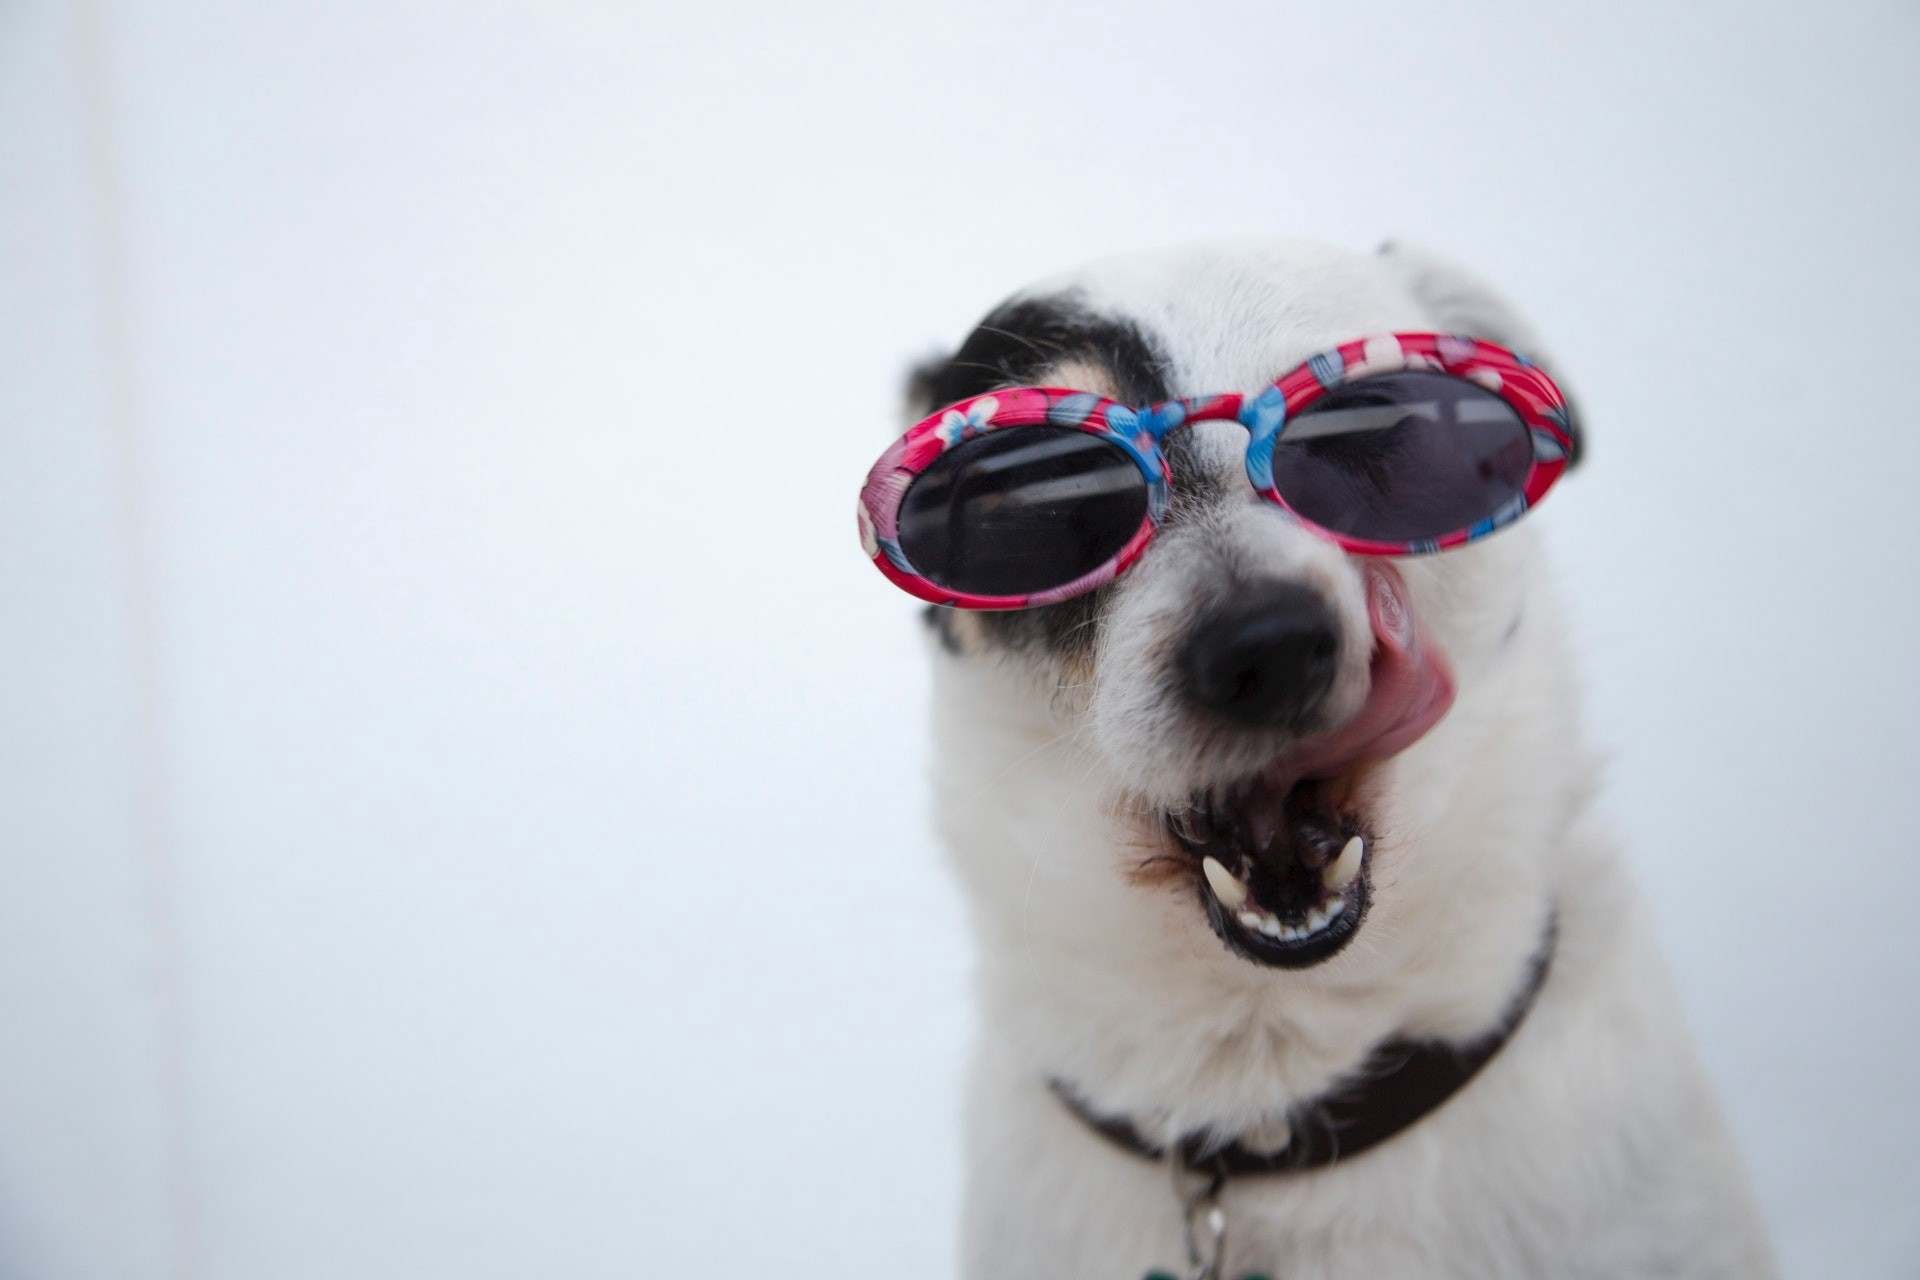 Close-up of dog in funny sunglasses.